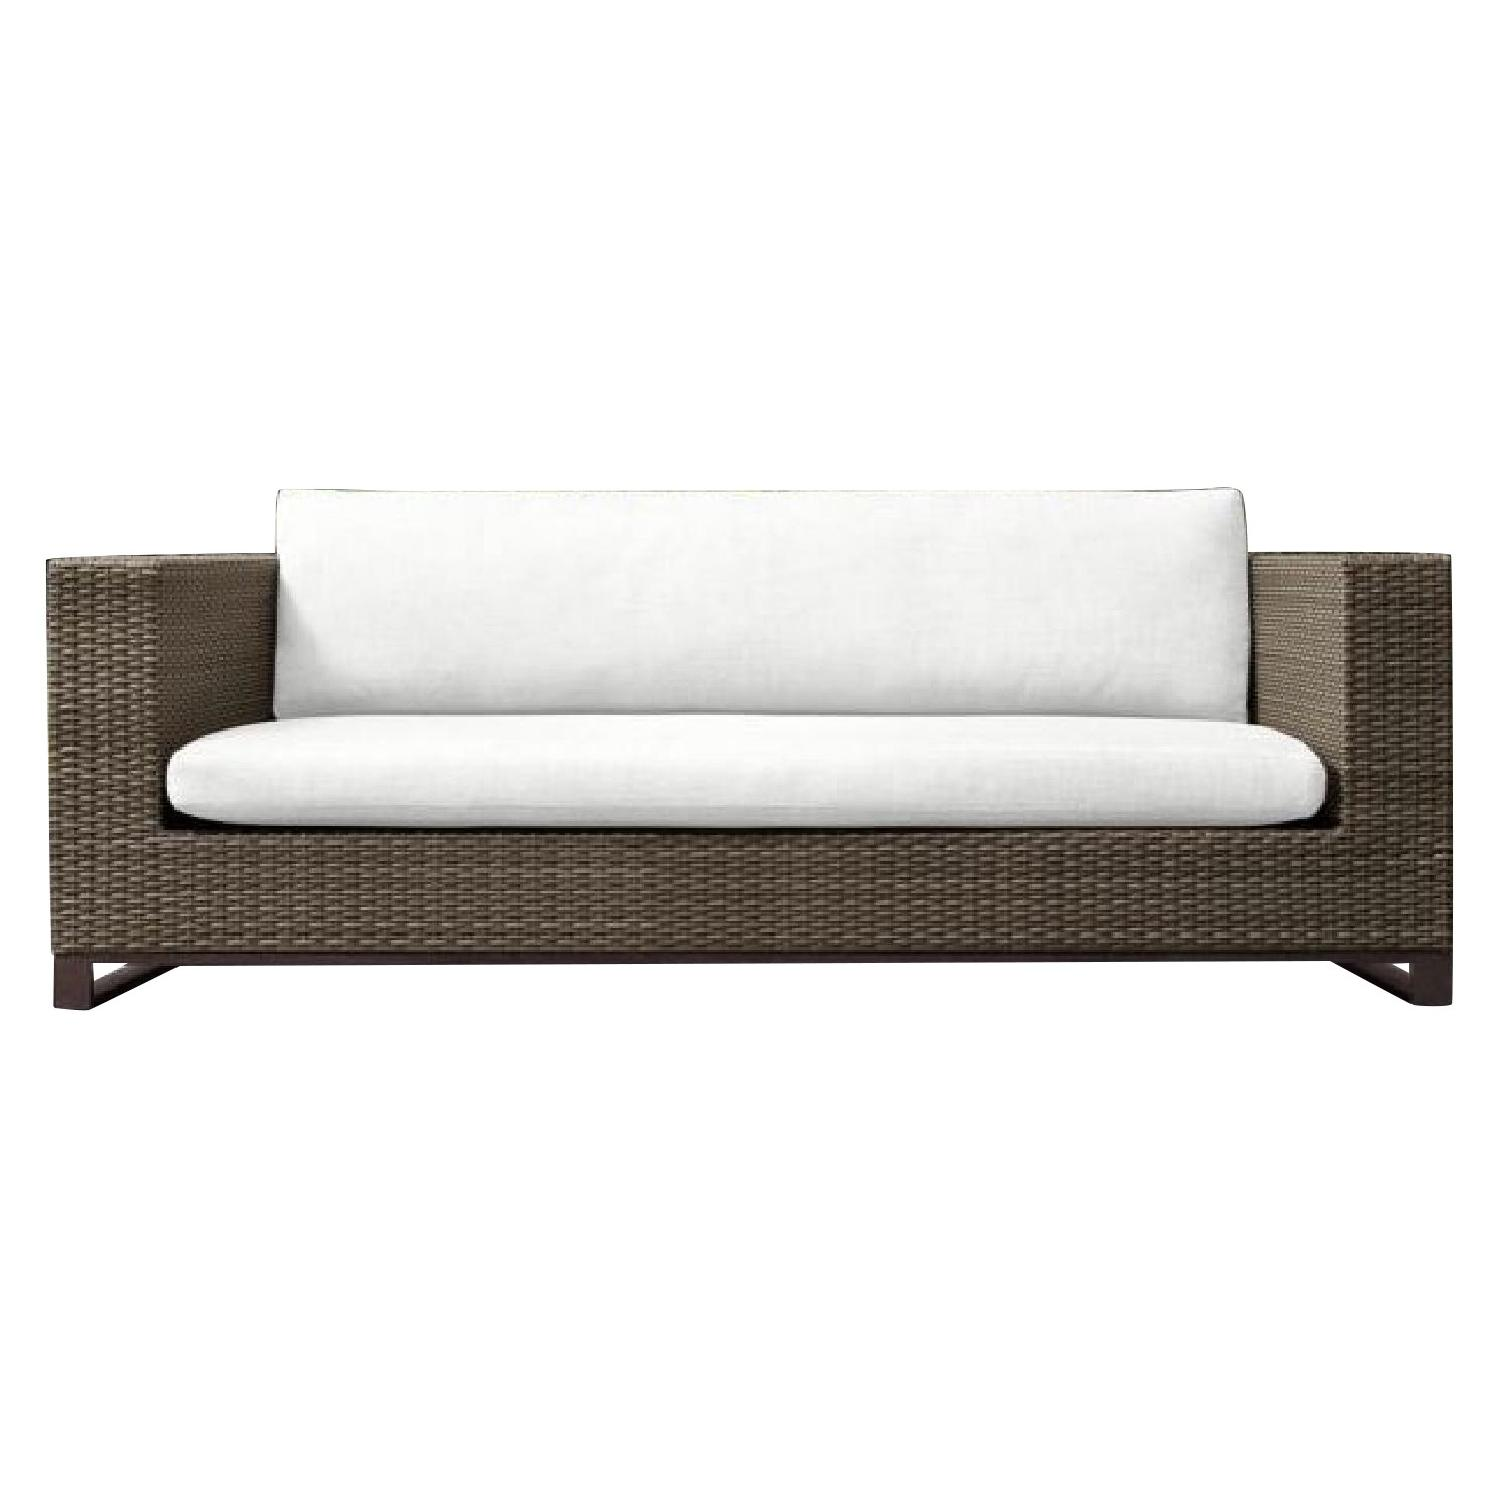 Restoration Hardware Tiburon Sofa w/ Cushions